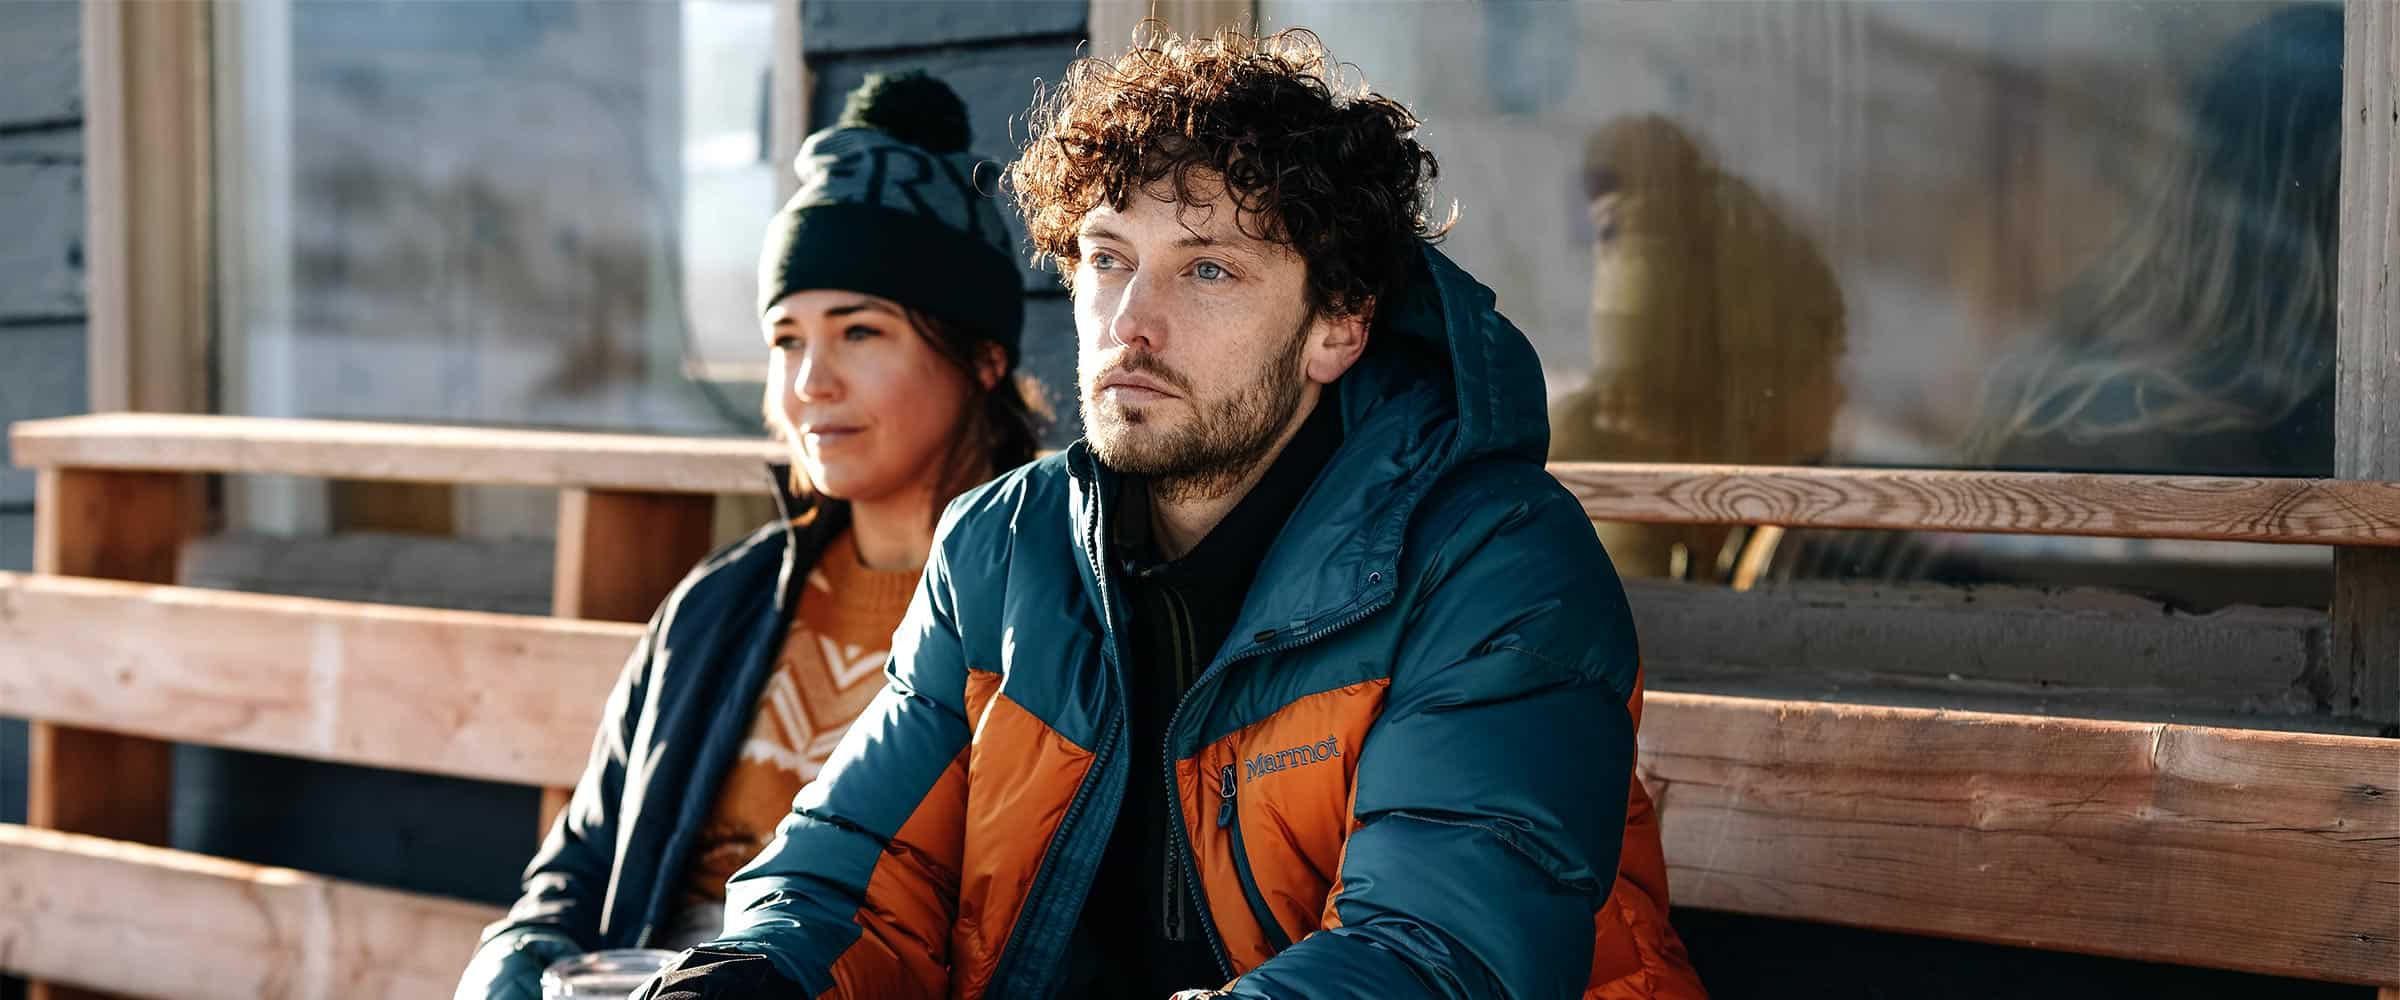 How to Choose the Right Winter Jacket